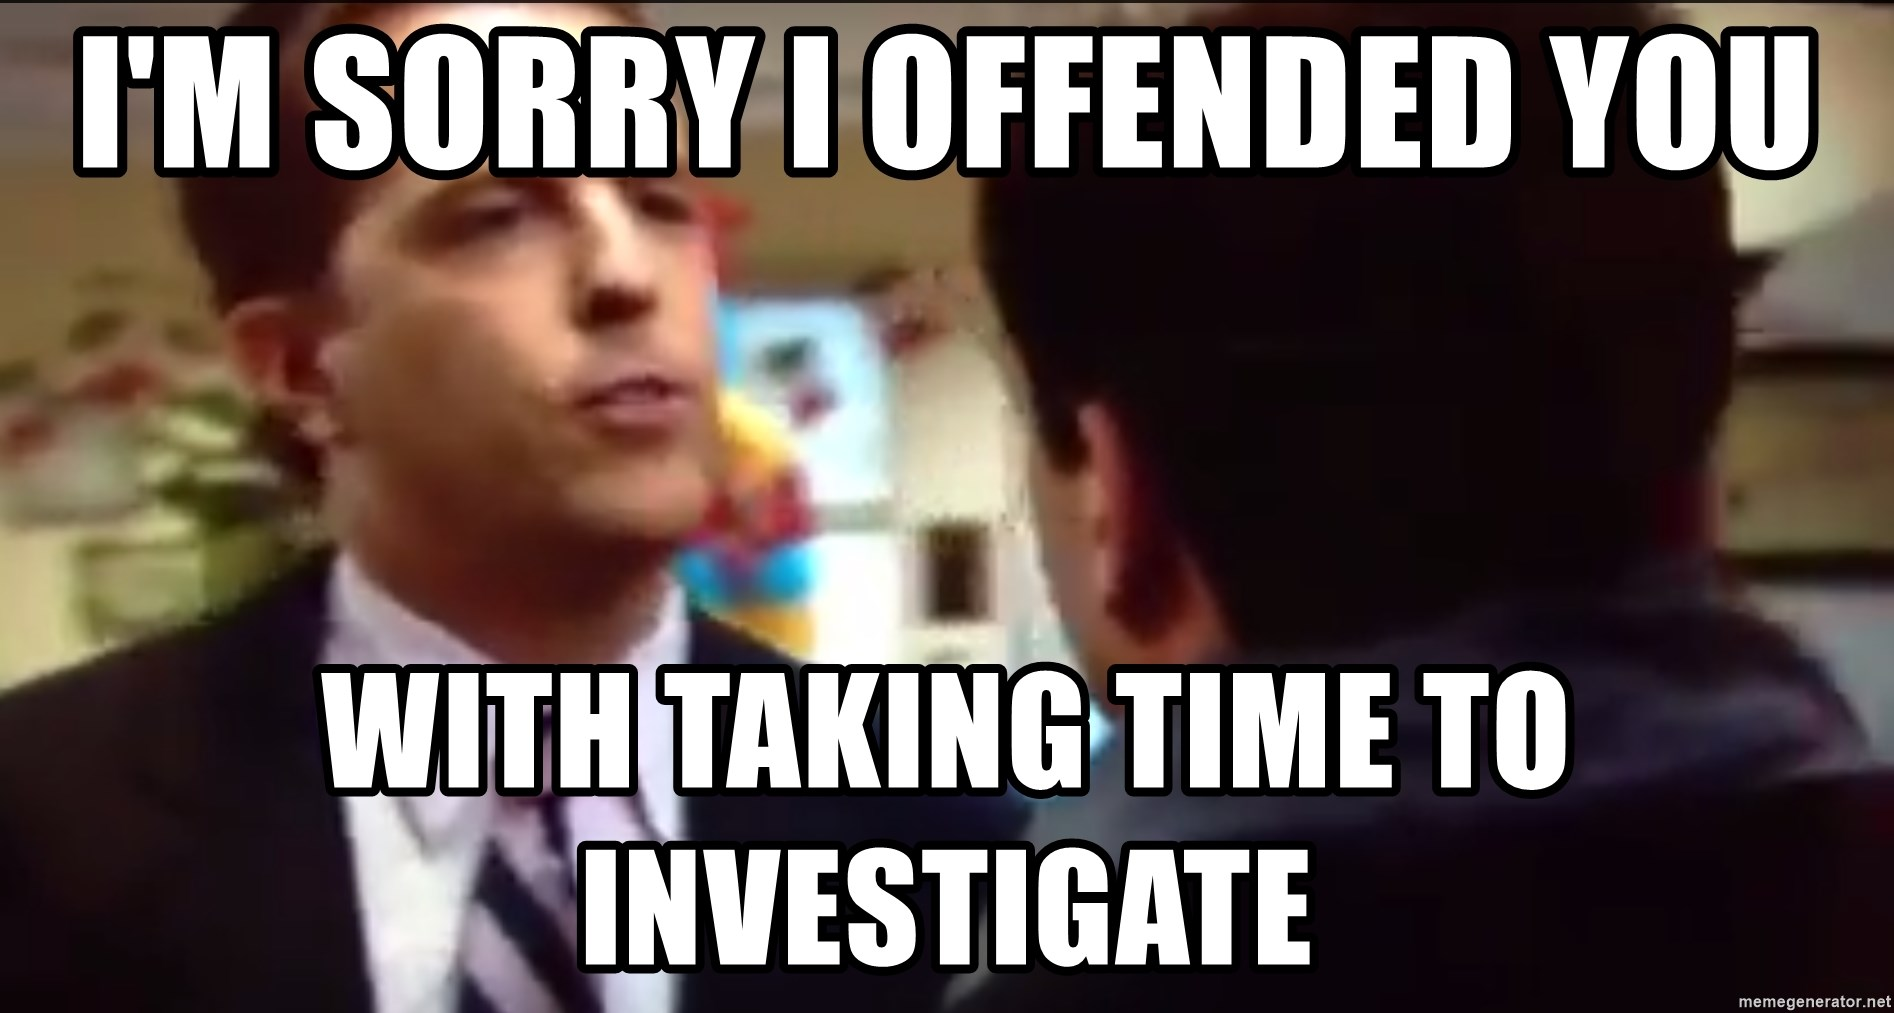 sorry i annoyed you with my friendship - I'm sorry i offended you with taking time to investigate